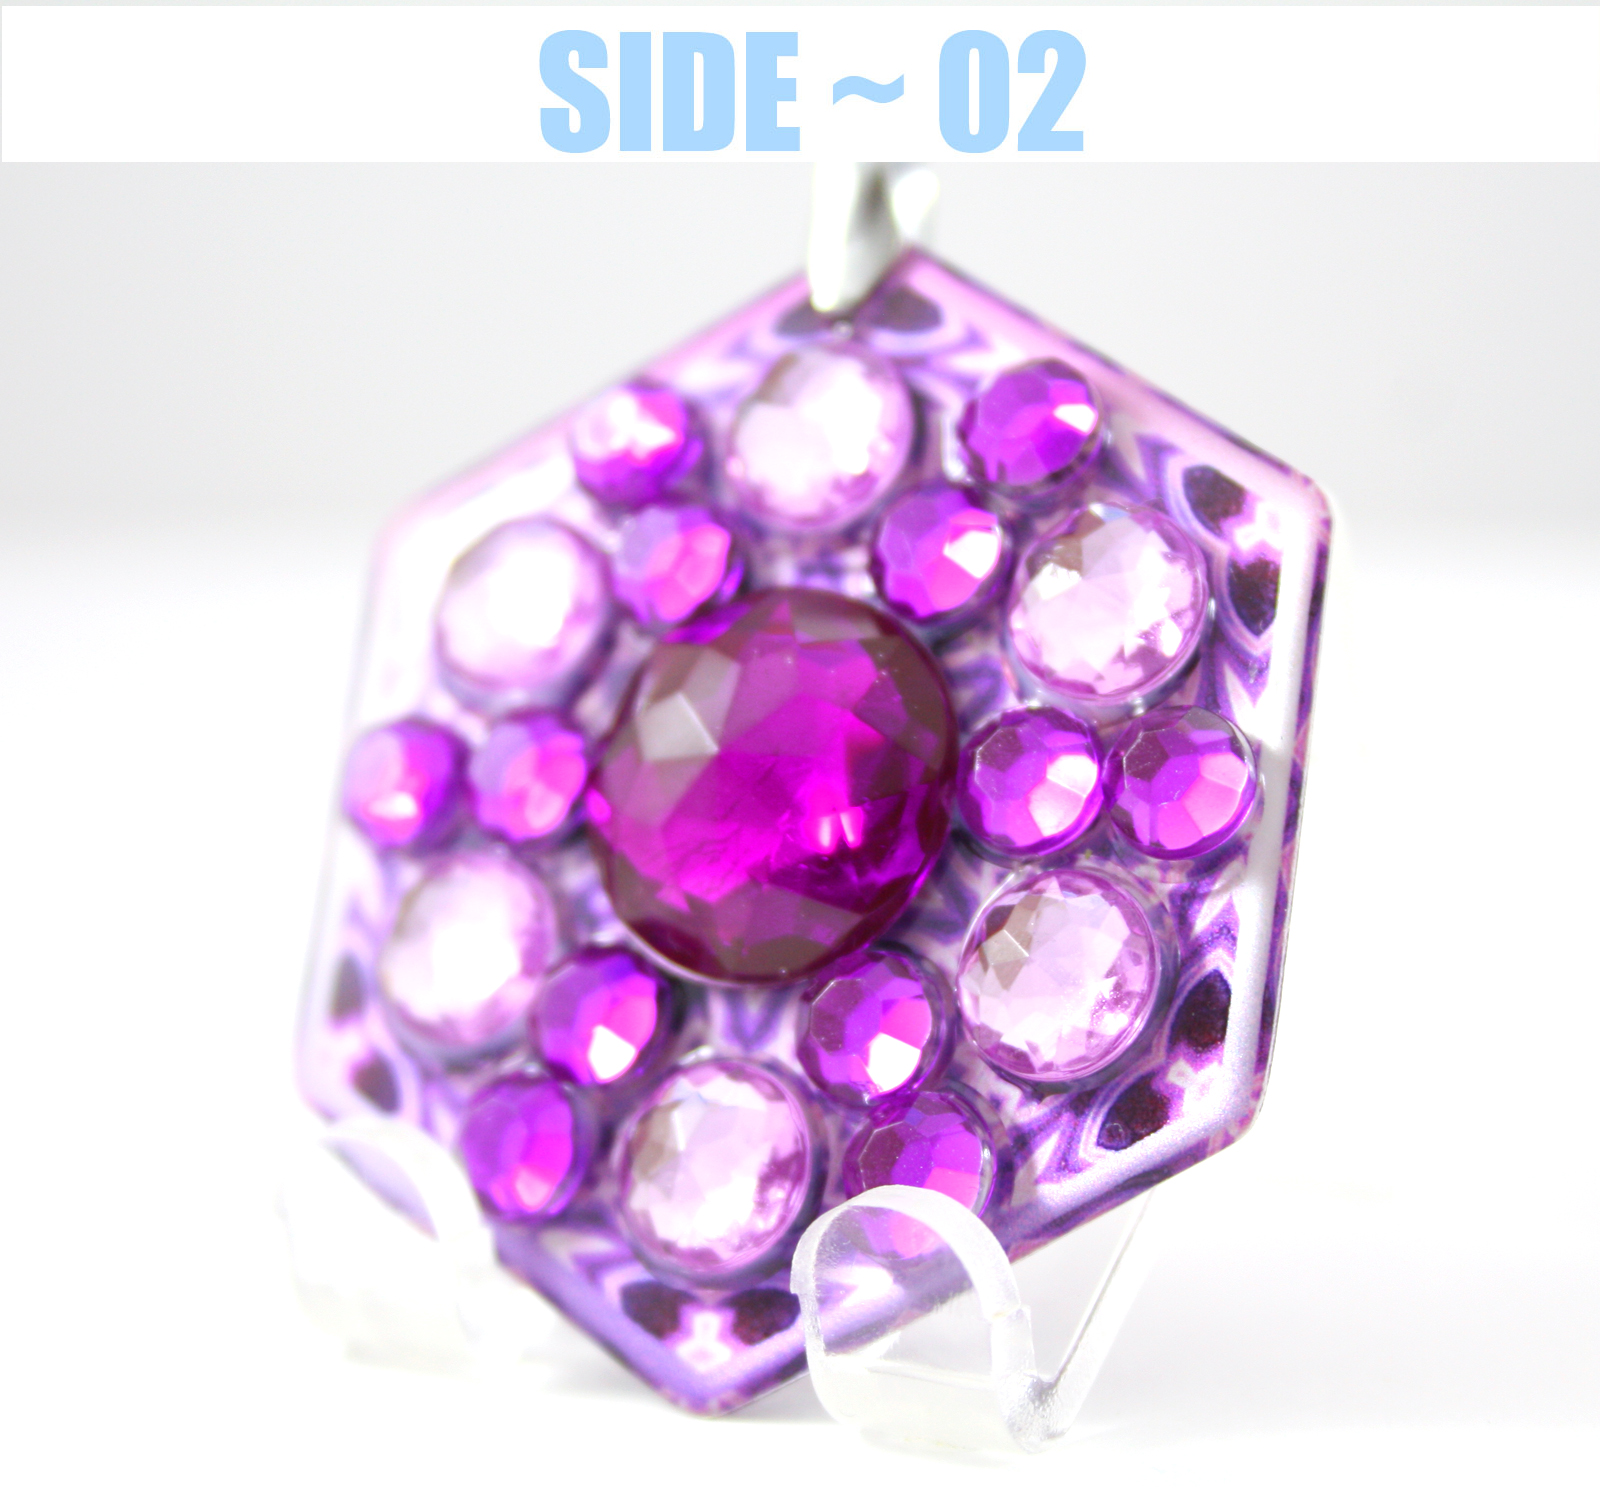 deep-ultra-violet-side-02b-new